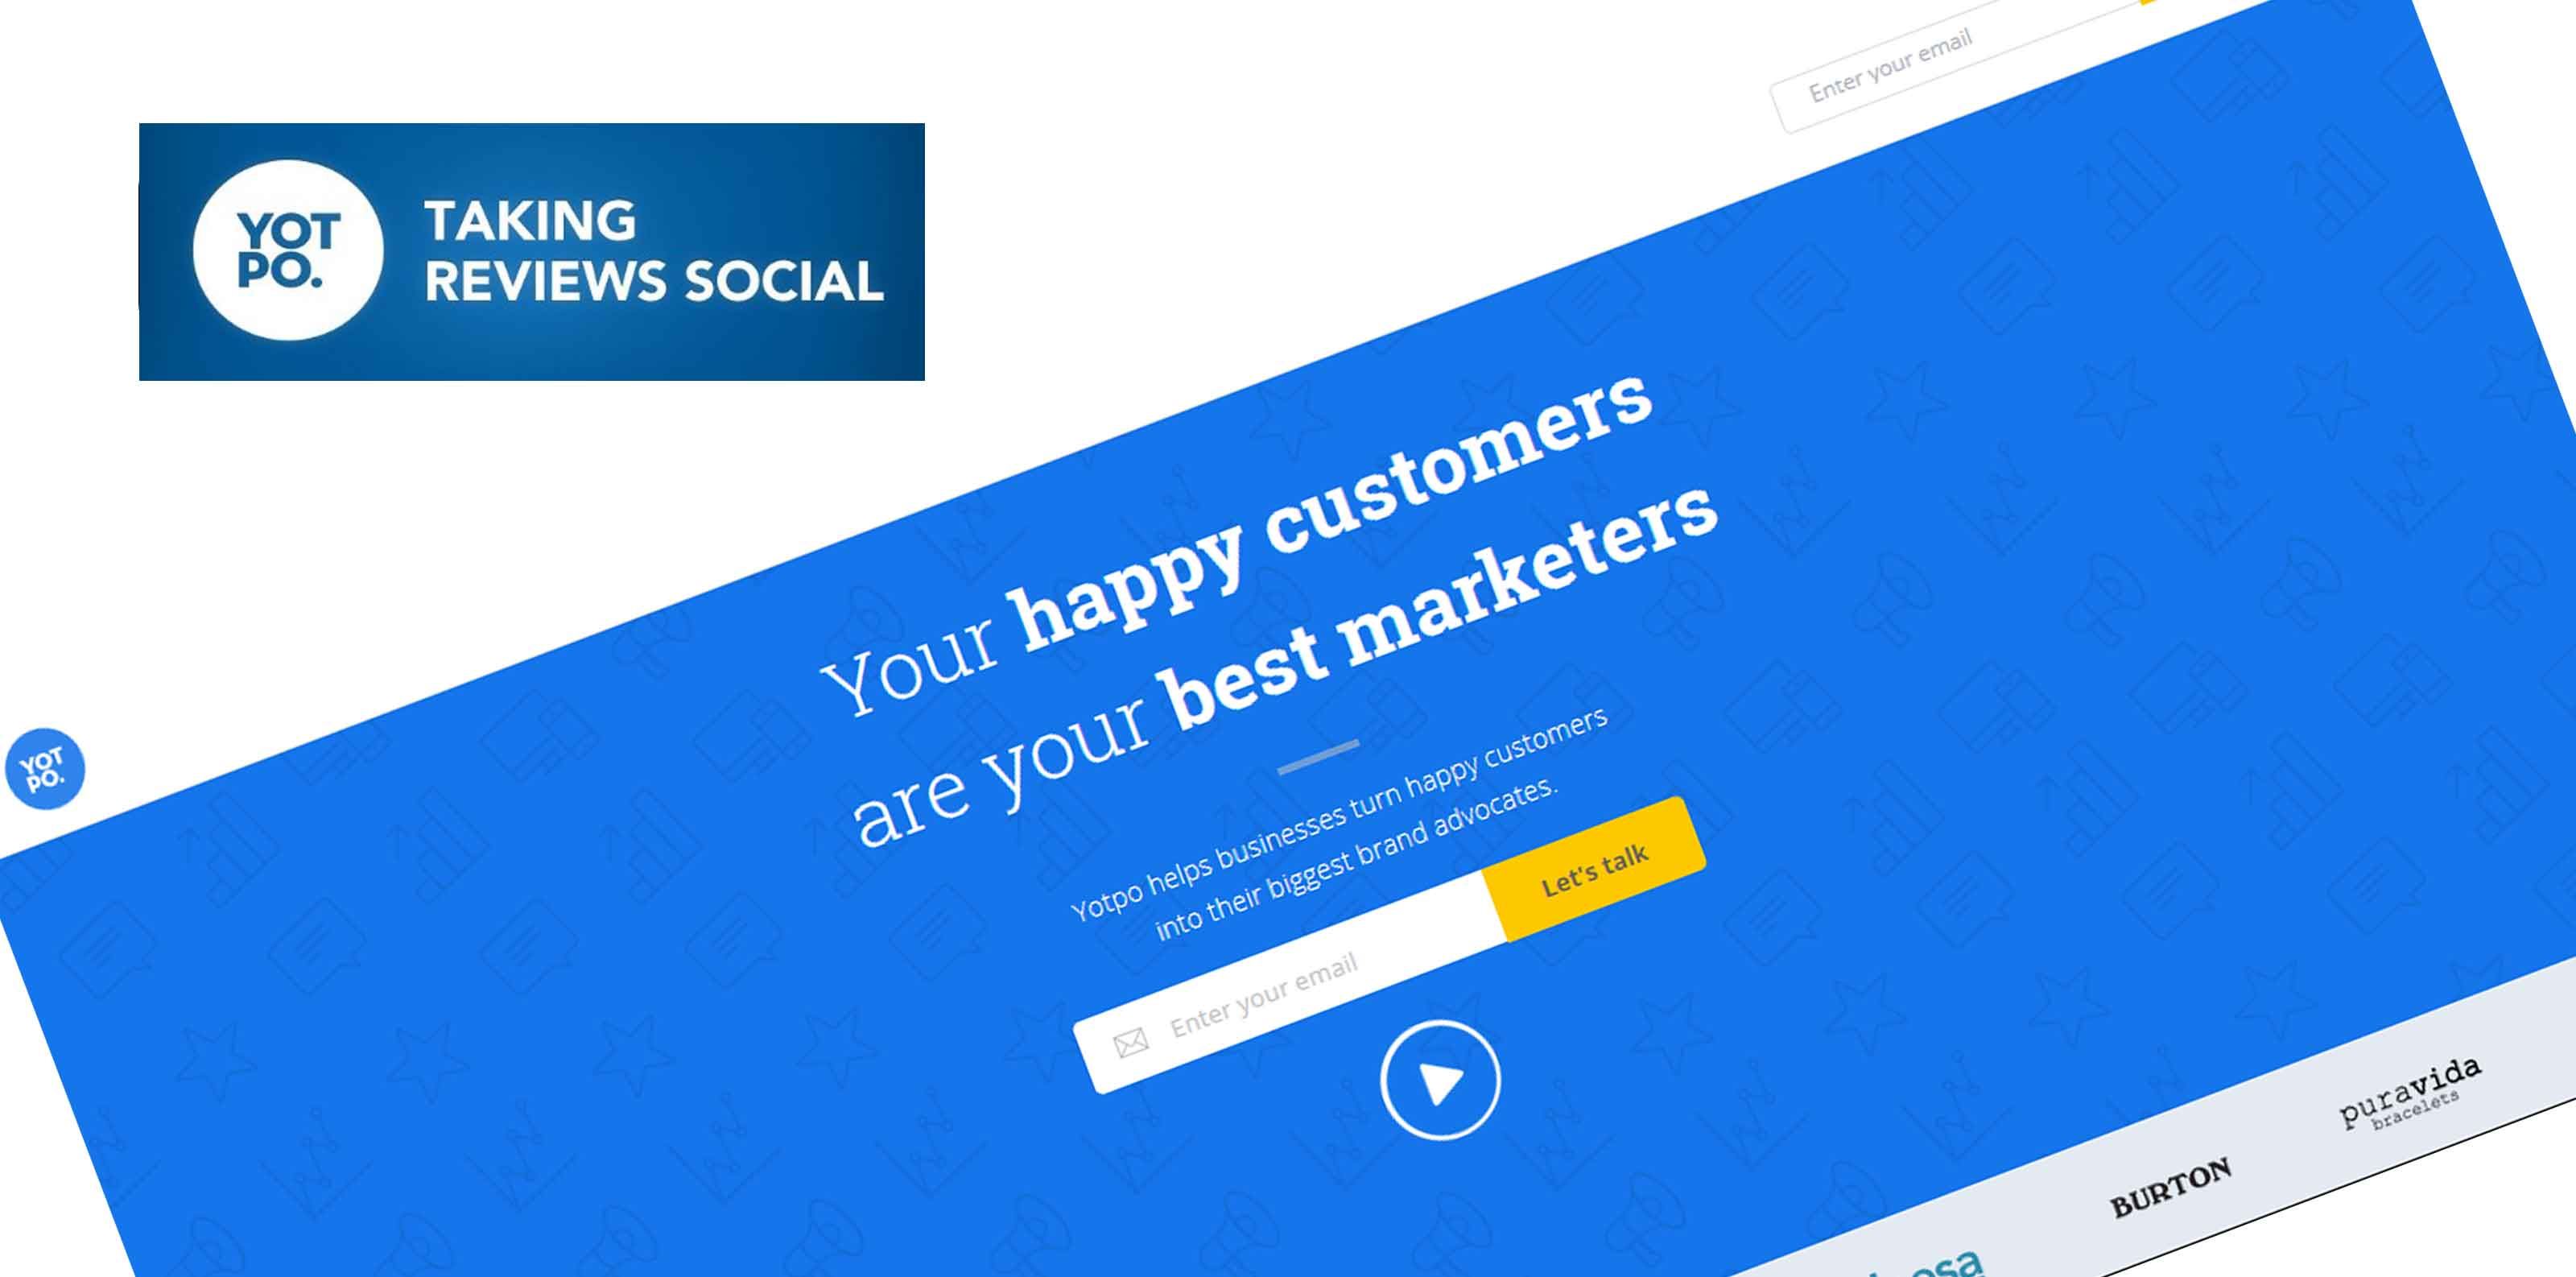 Yotpo is the industry leader in user-generated content technology. Yotpo helps stores generate tons of reviews and use them to drive quality traffic and sales through social media, email and…